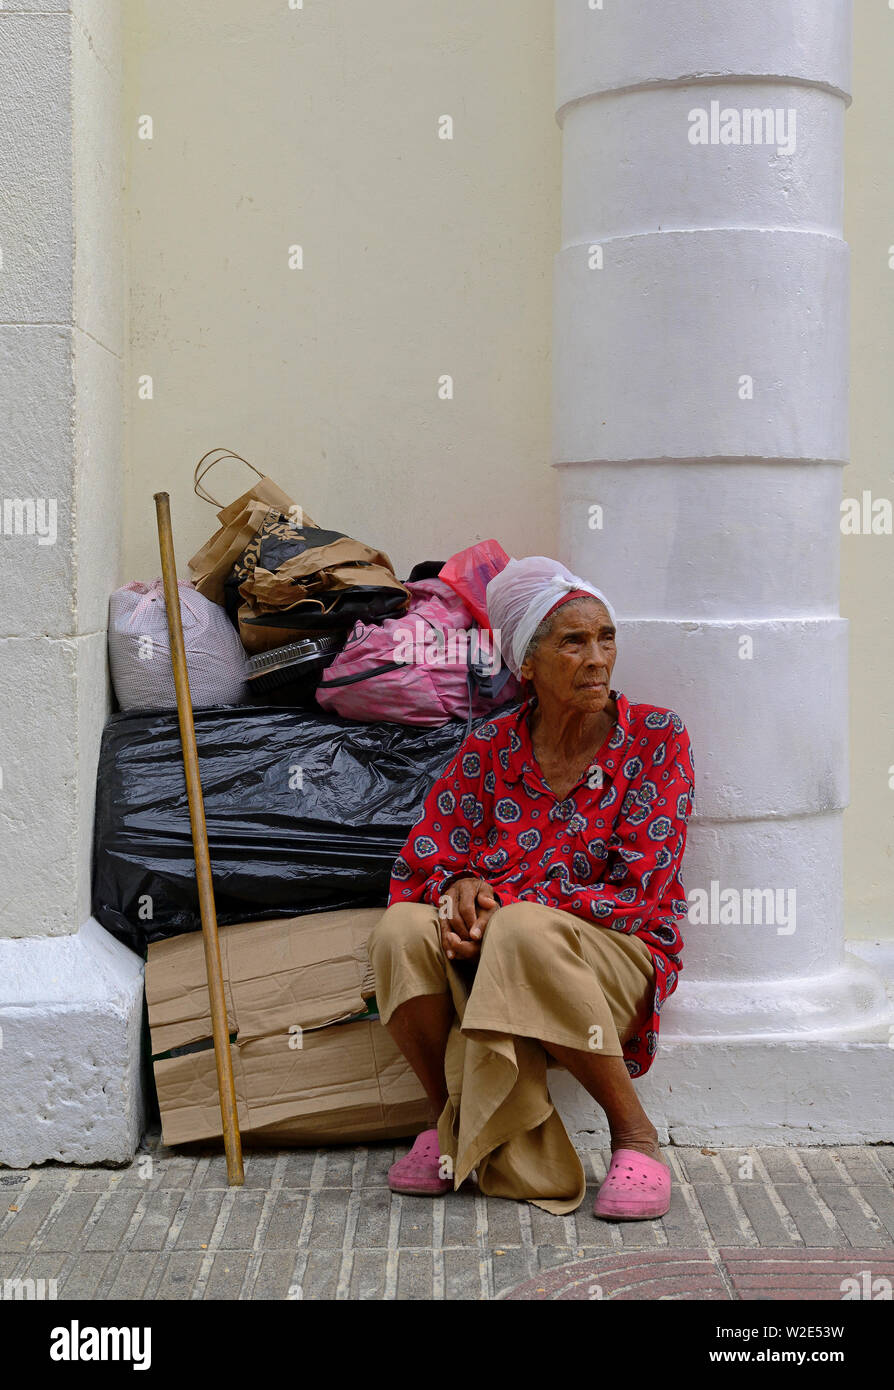 santo domingo, dominican republic - november 01, 2013: an old woman sitting on the roadside of calle el conde - Stock Image